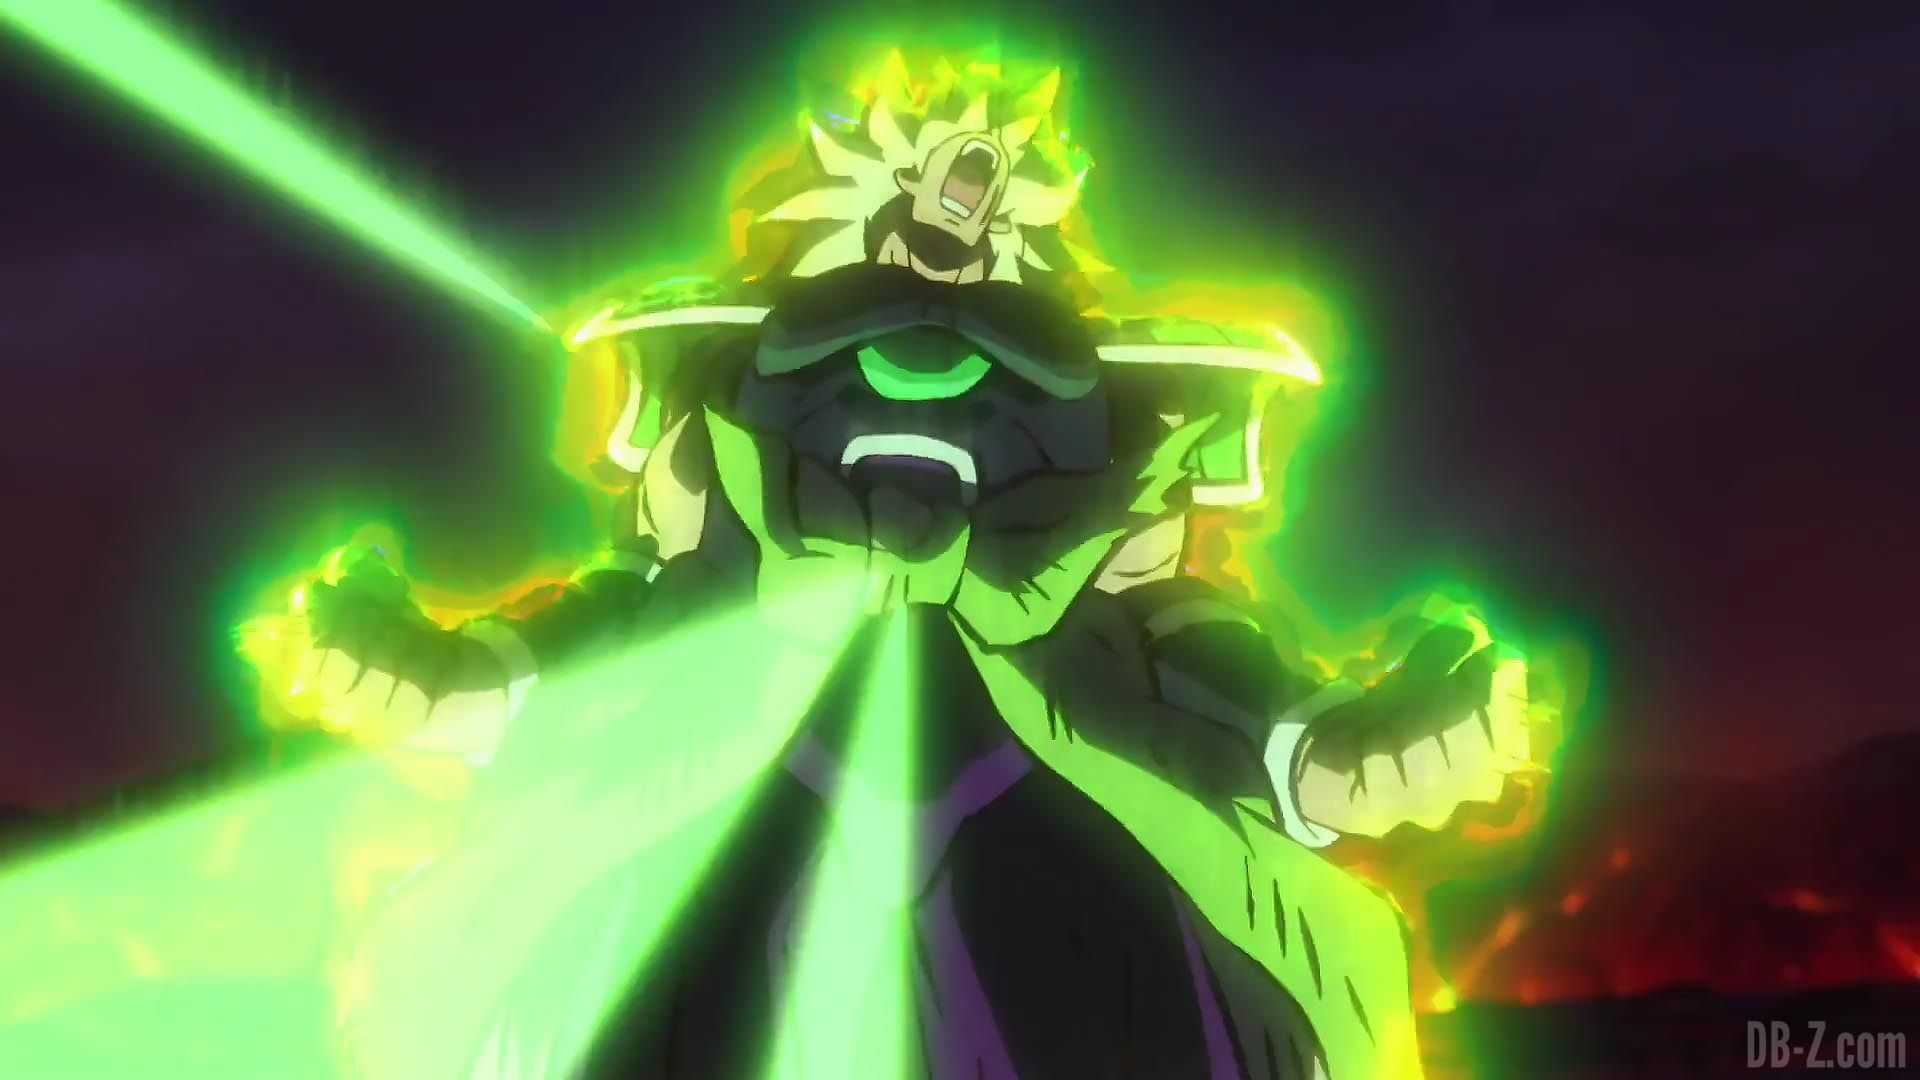 Trailer Film Broly 2018 Dragon Ball Super 0050 Jpg 1920 1080 Dragon Ball Super Dragon Ball Super Wallpapers Dragon Ball